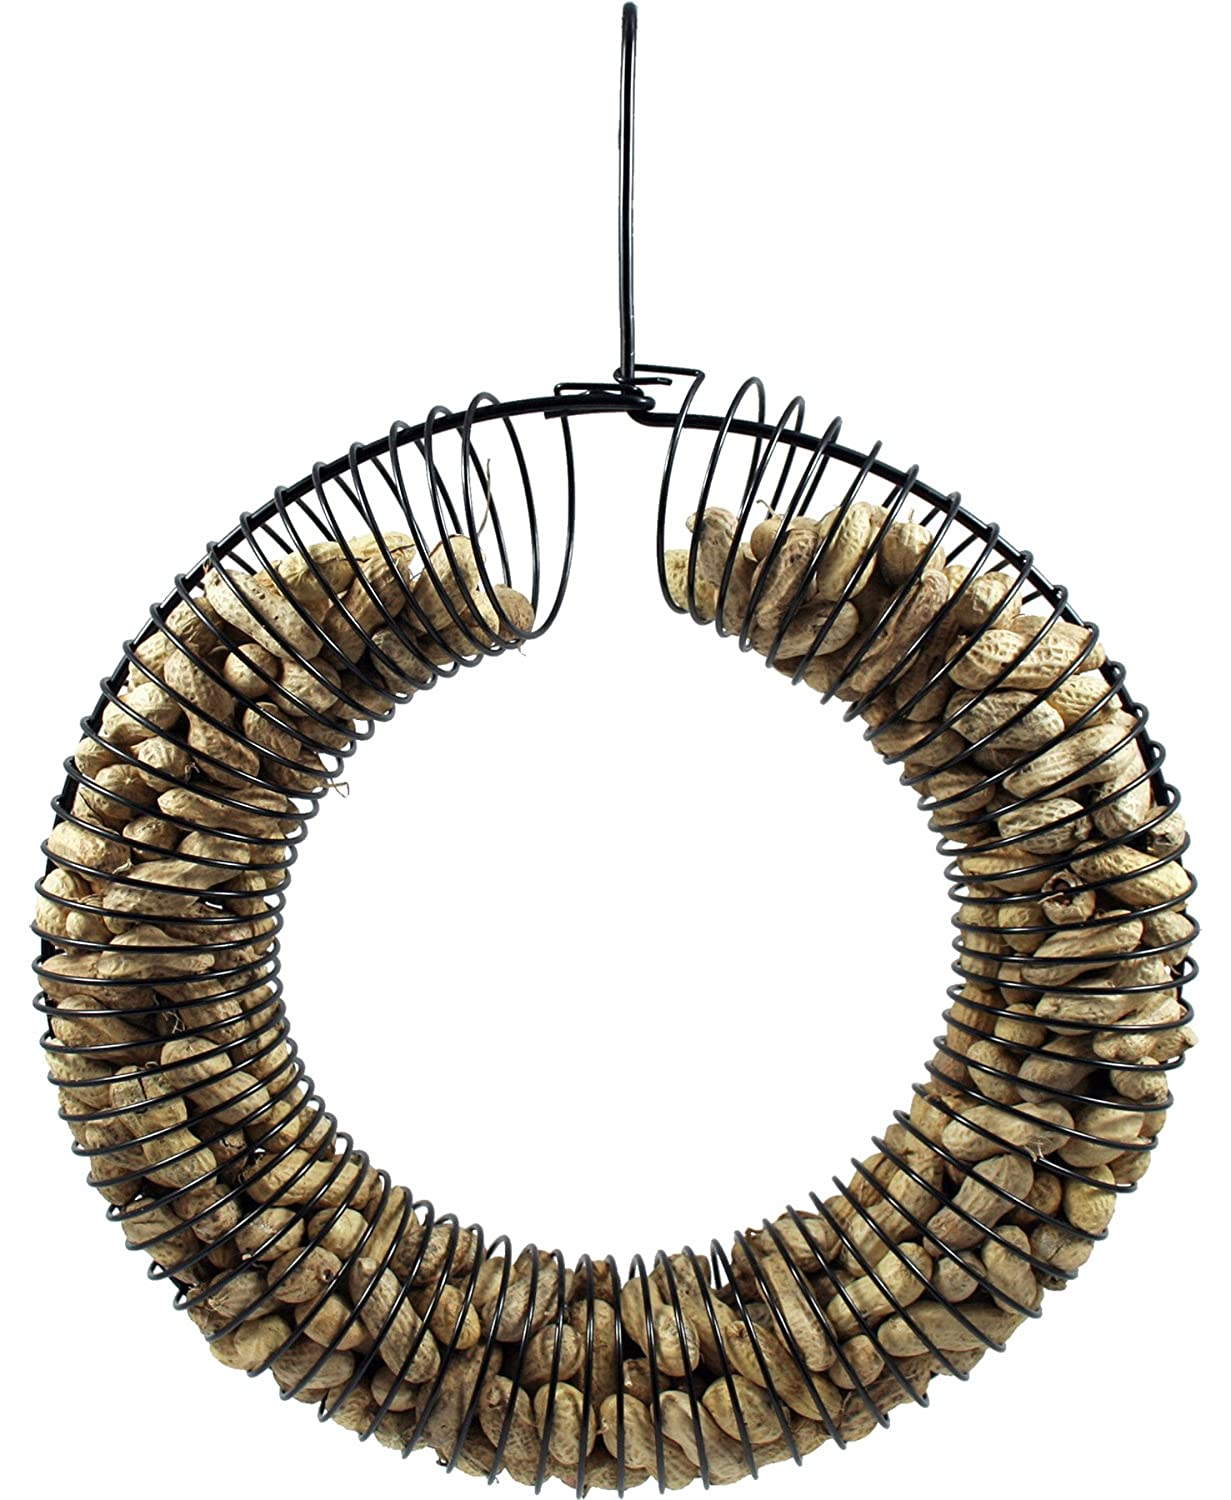 Whole Peanut Wreath Ring Black Pinebush Home & Garden